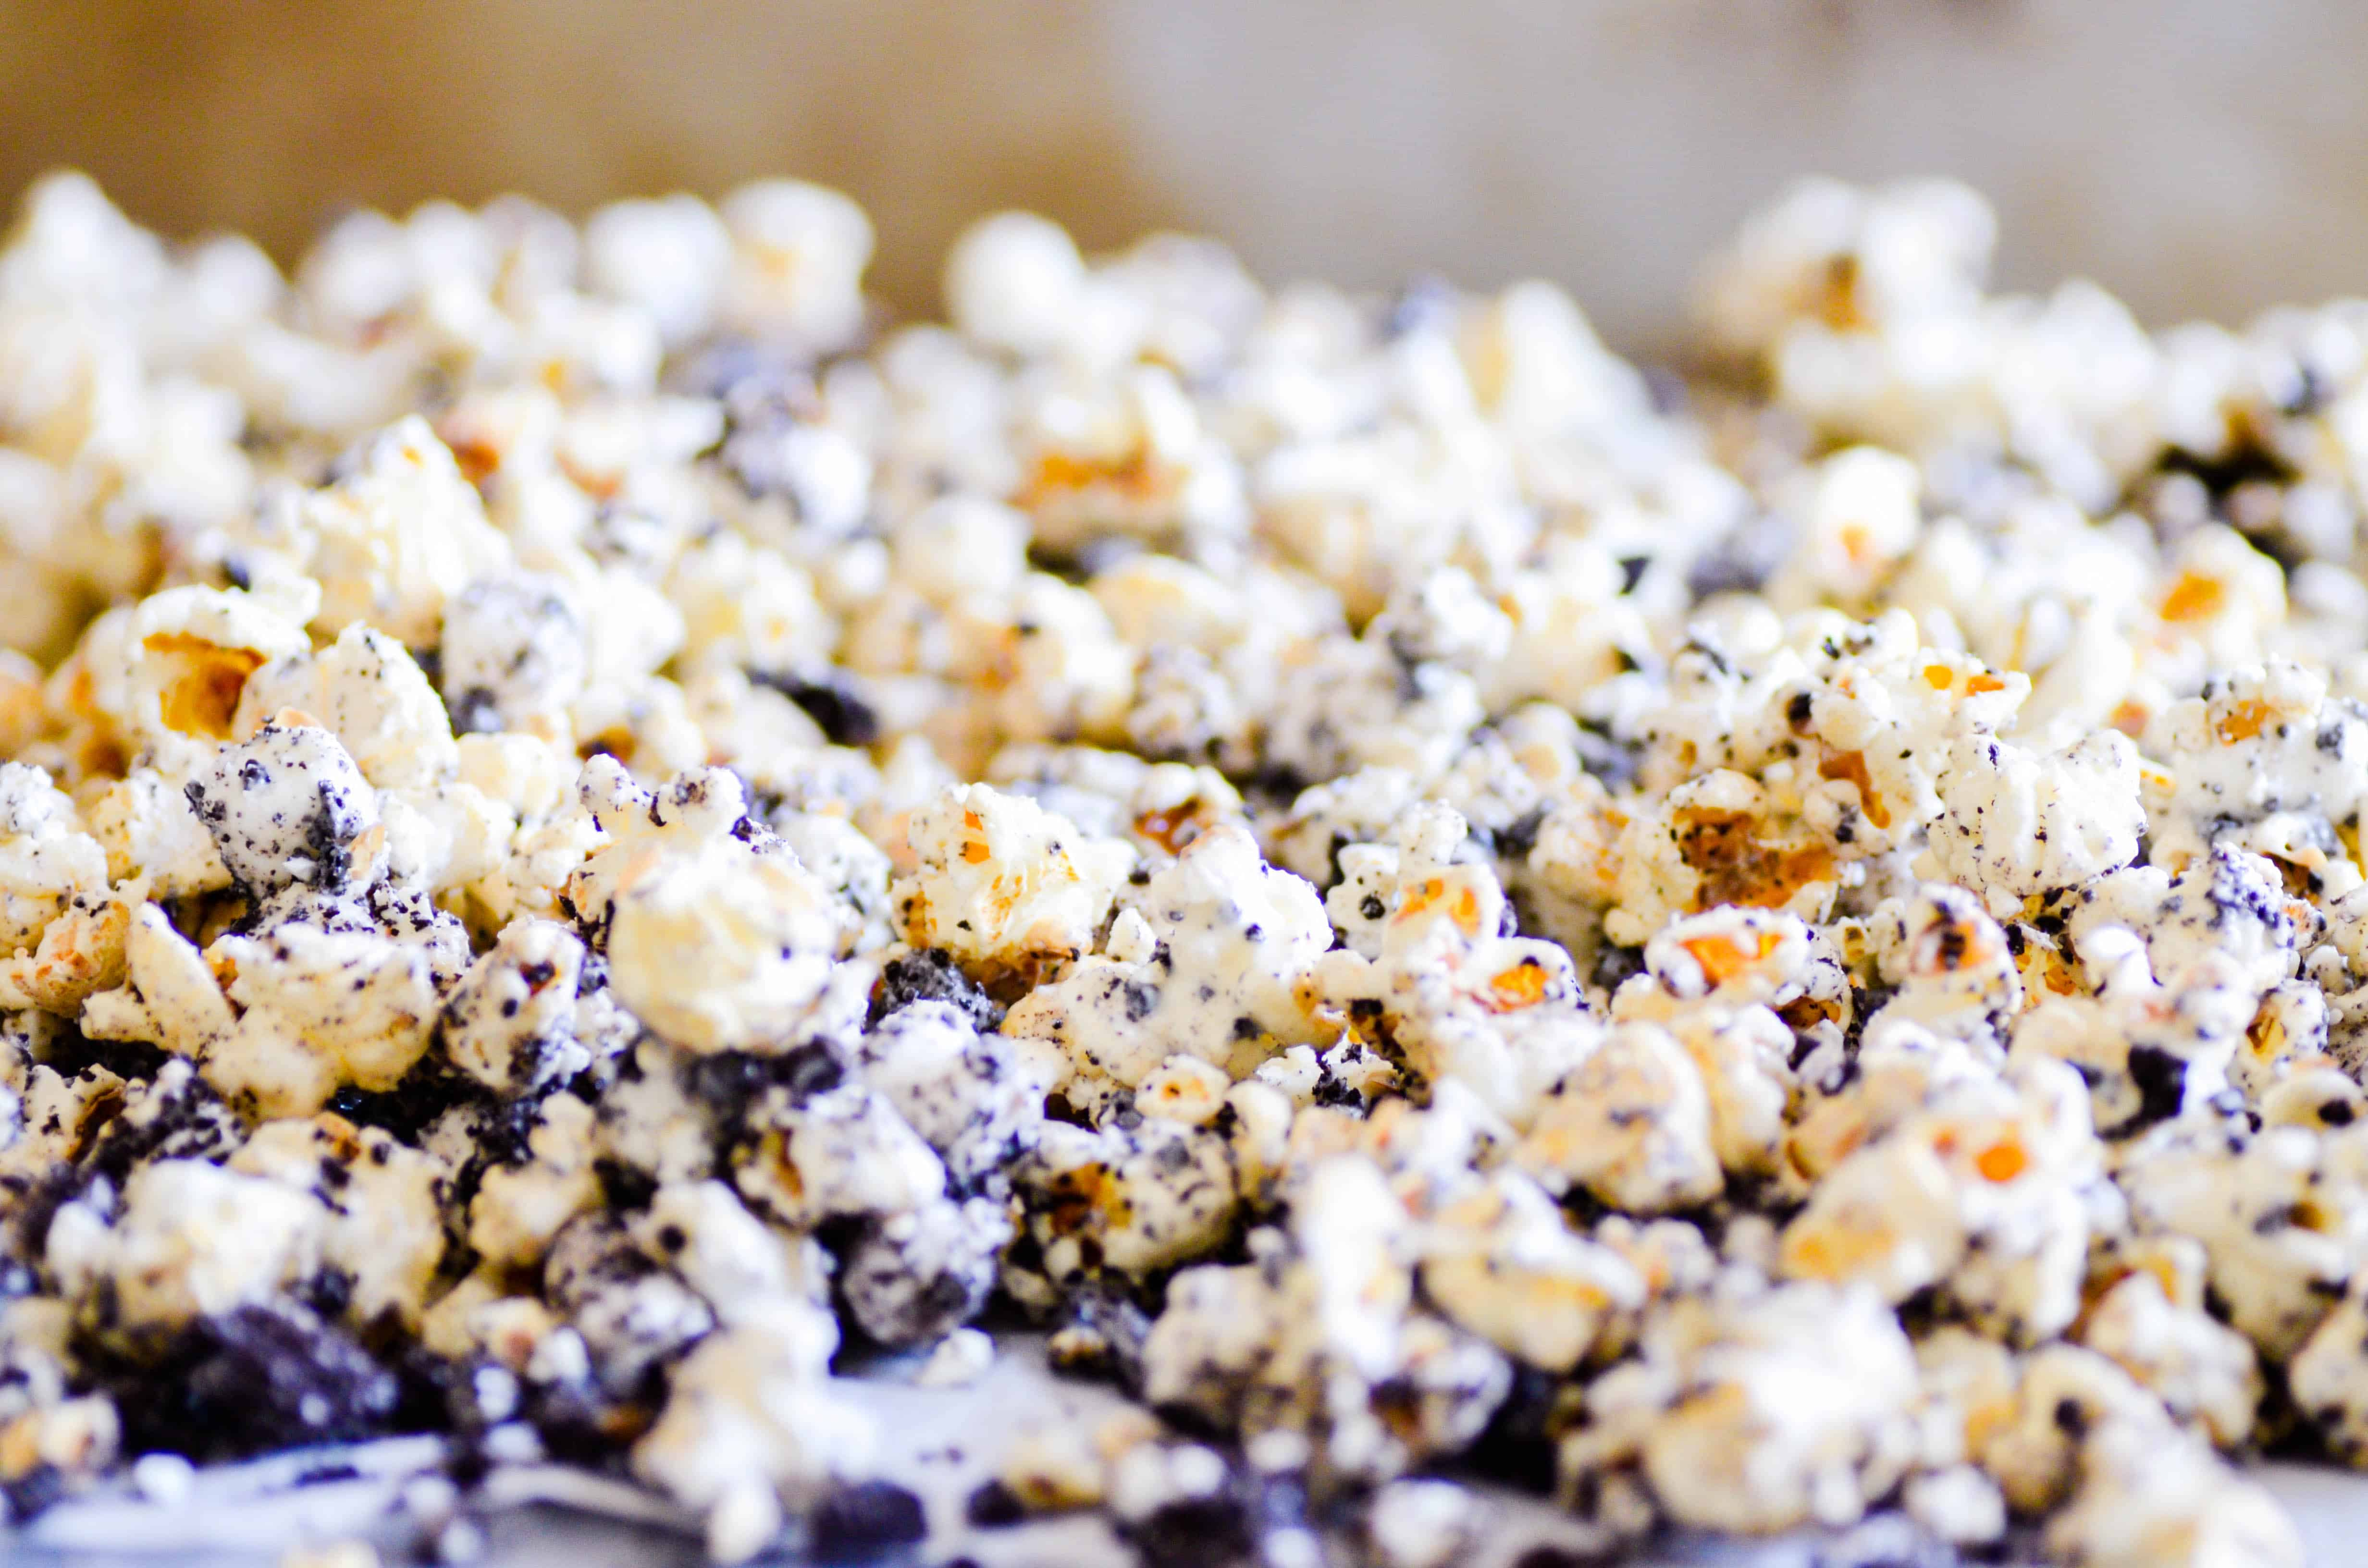 Kettle corn, Oreos, and marshmallows coated in white chocolate. This recipe is an easy, no-bake recipe perfect for packaging, sharing with a crowd, or enjoying during a family movie night.